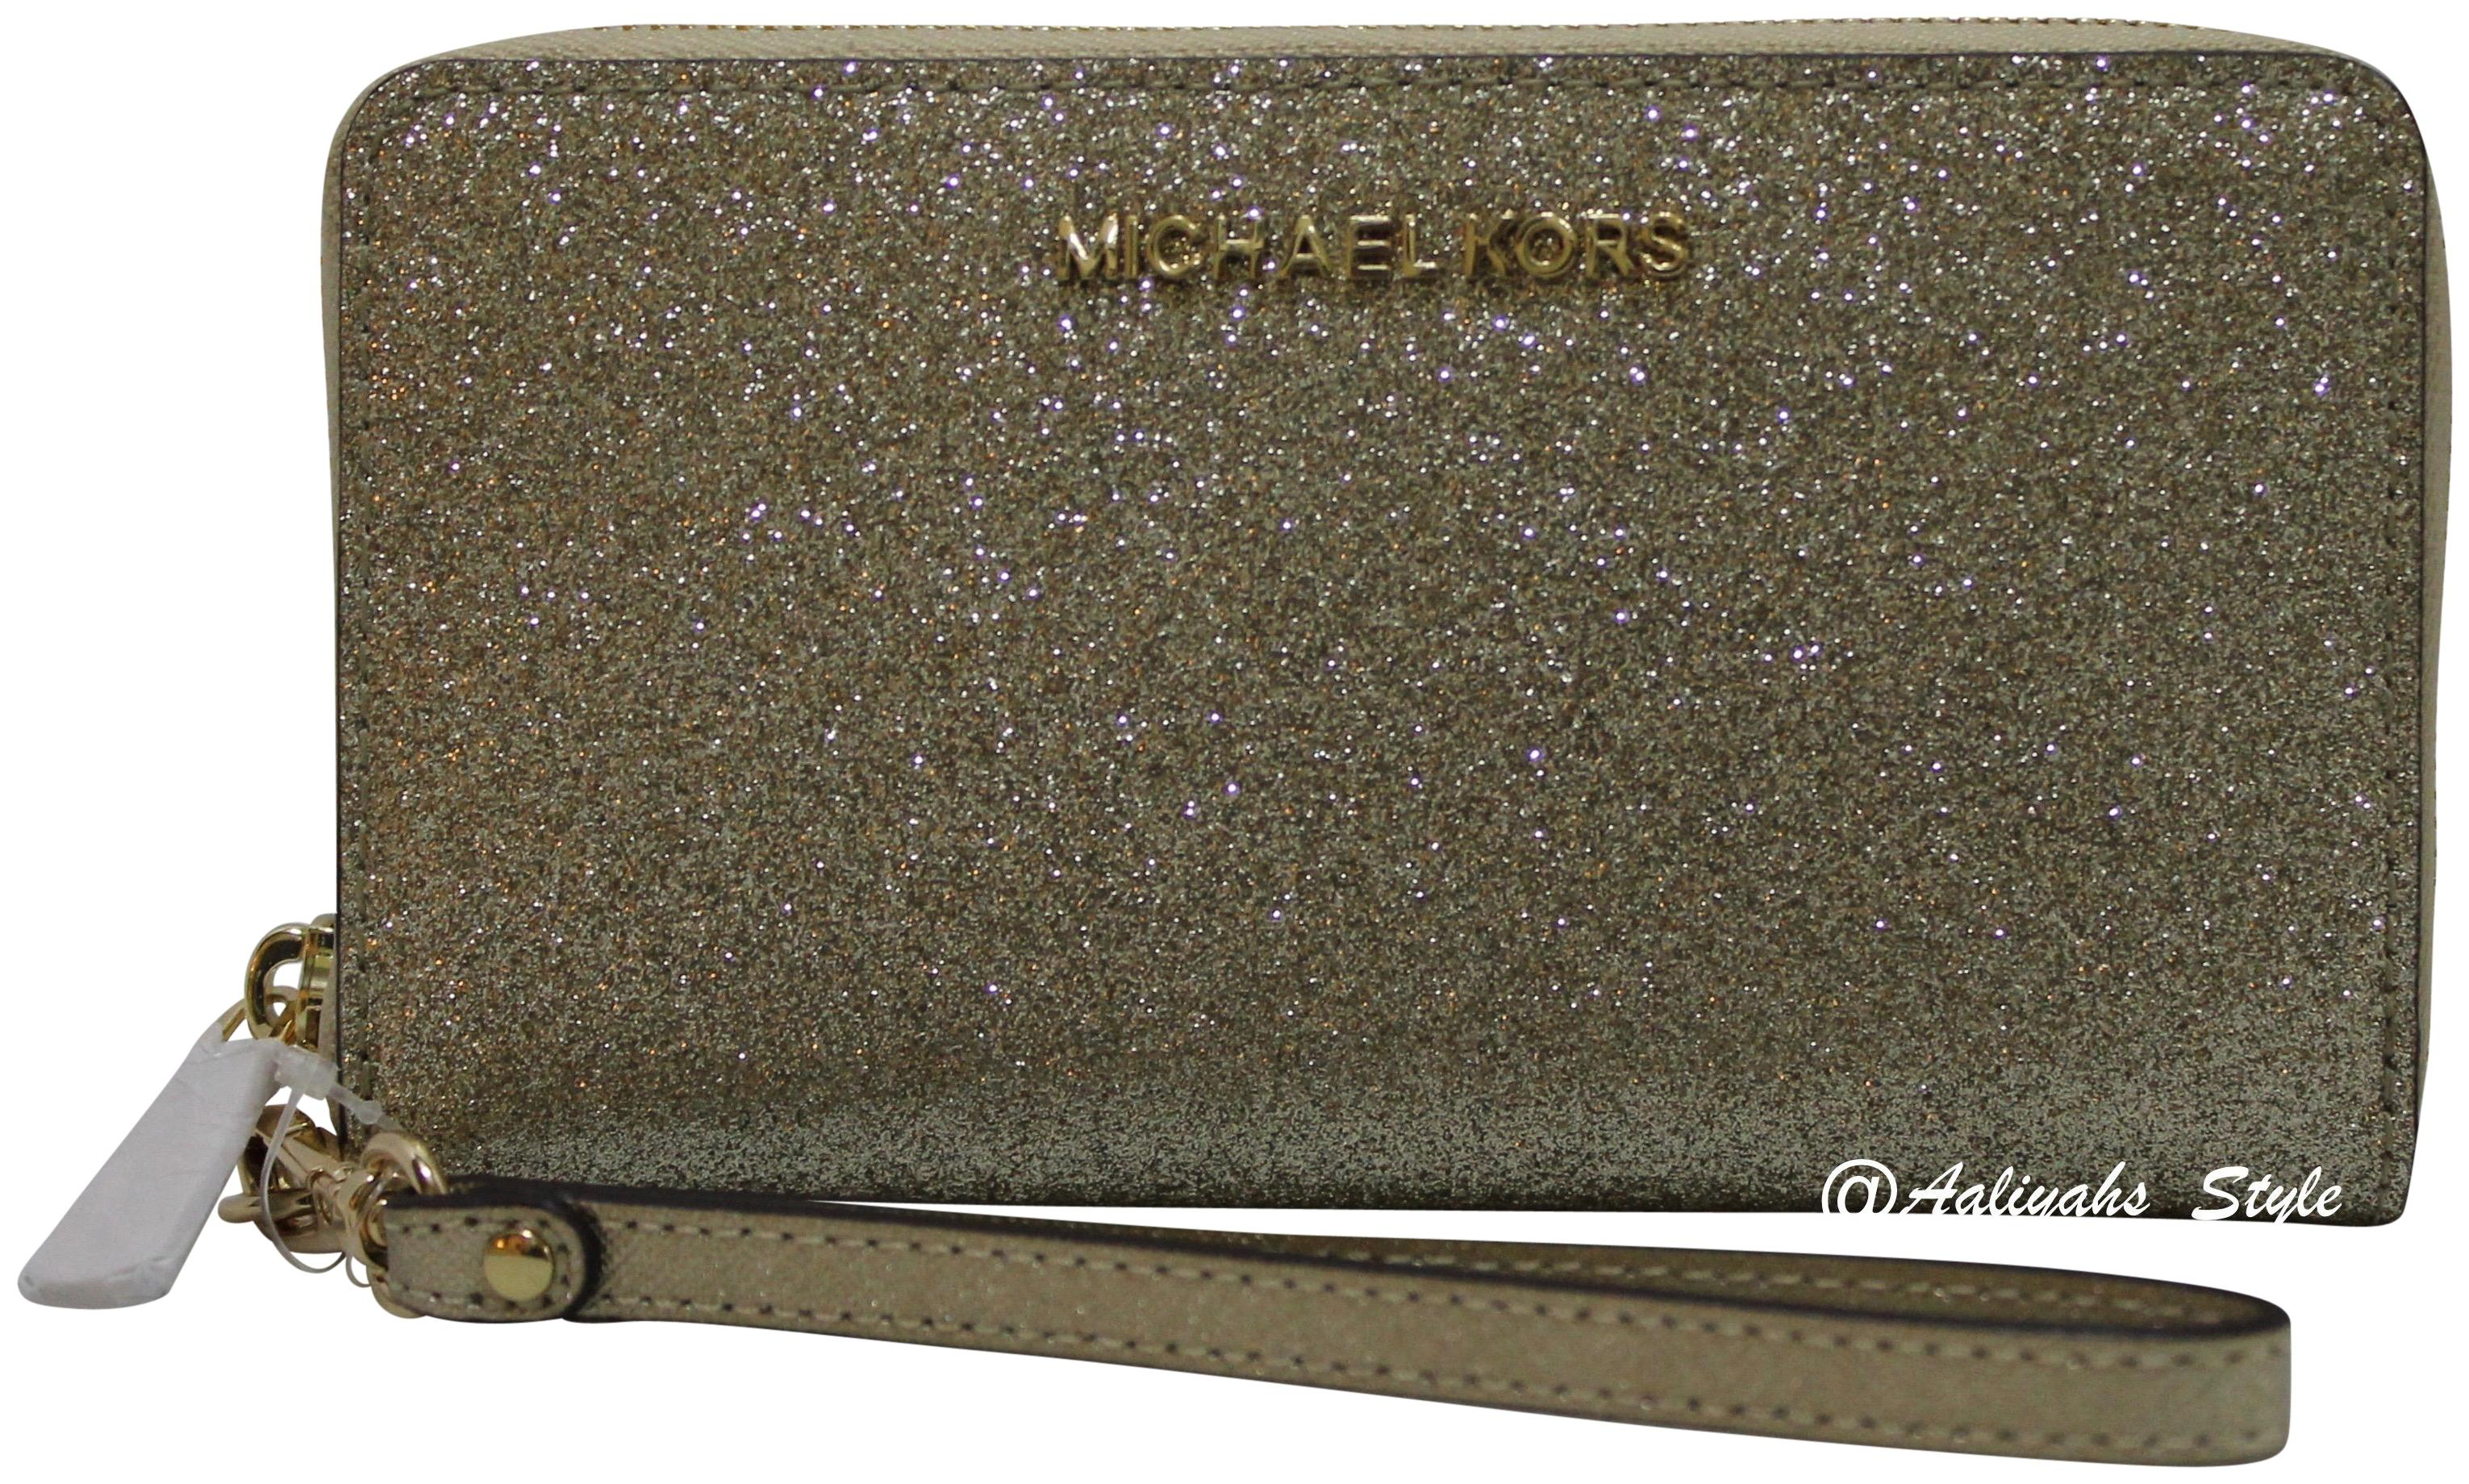 5cc25d51fef4 ... discount code for michael kors wallet 191935024701 wristlet in pale  gold 7fcc5 ba3f0 ...